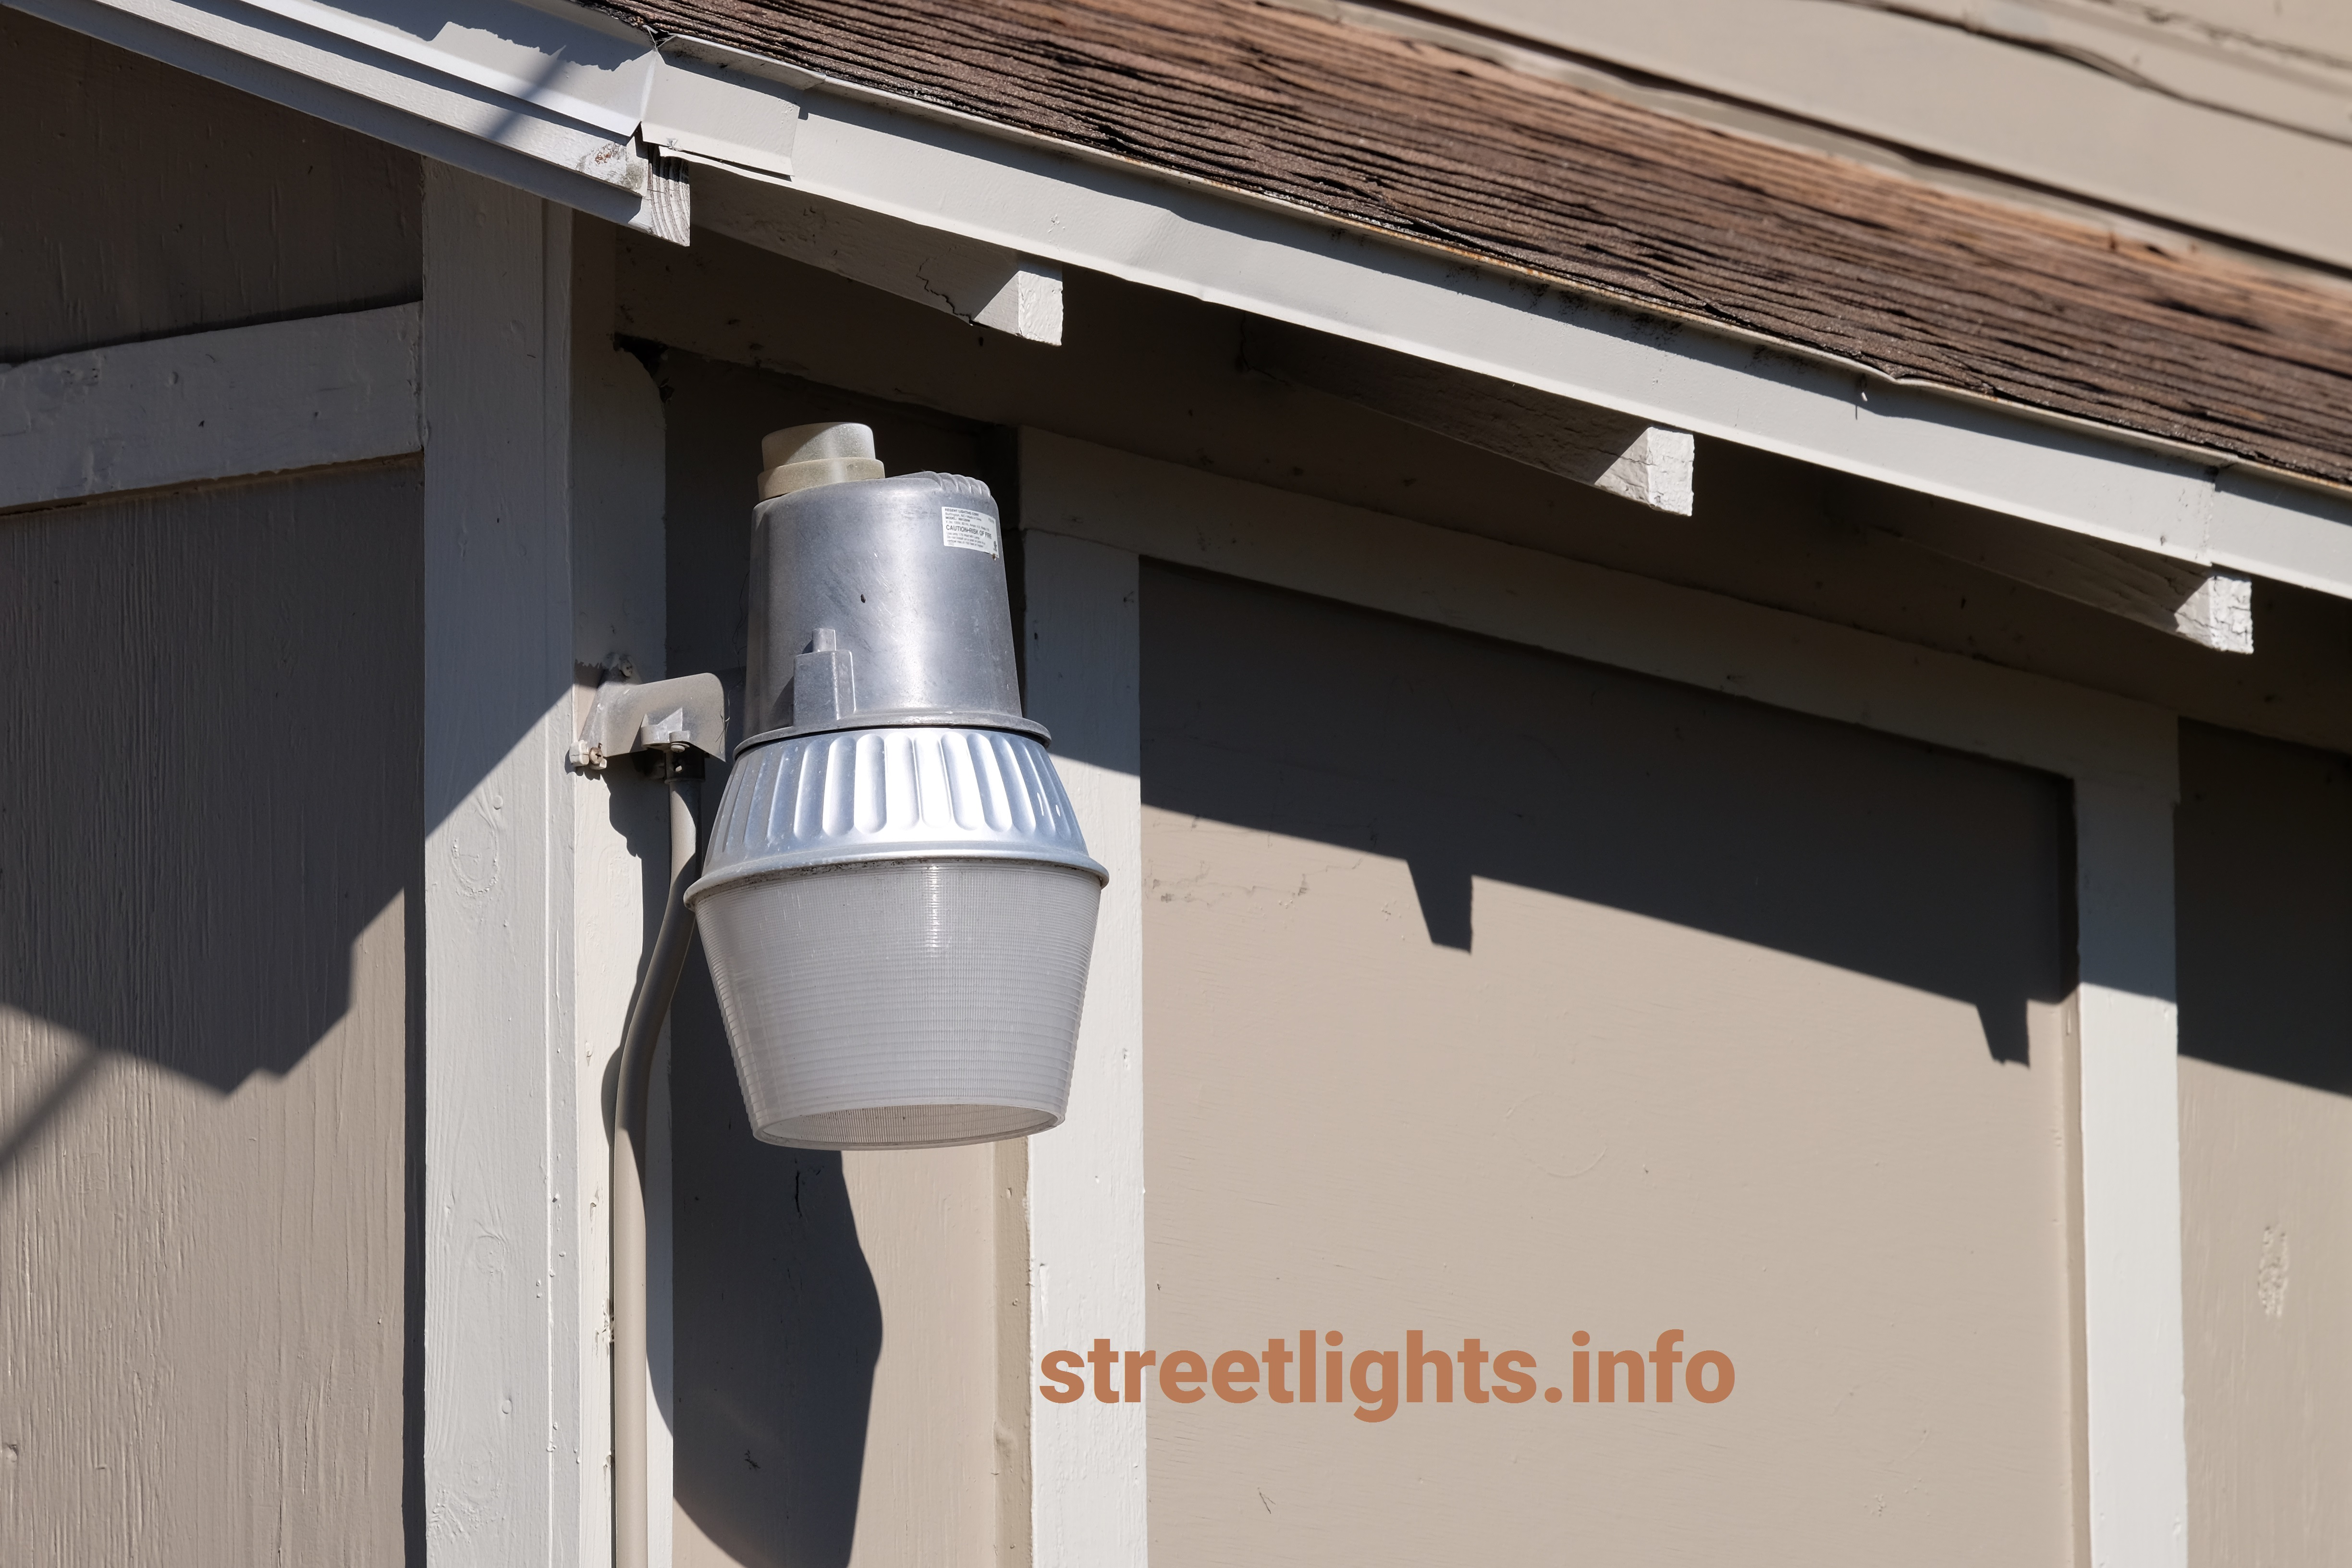 An example of a non-LED bucket light yard light.